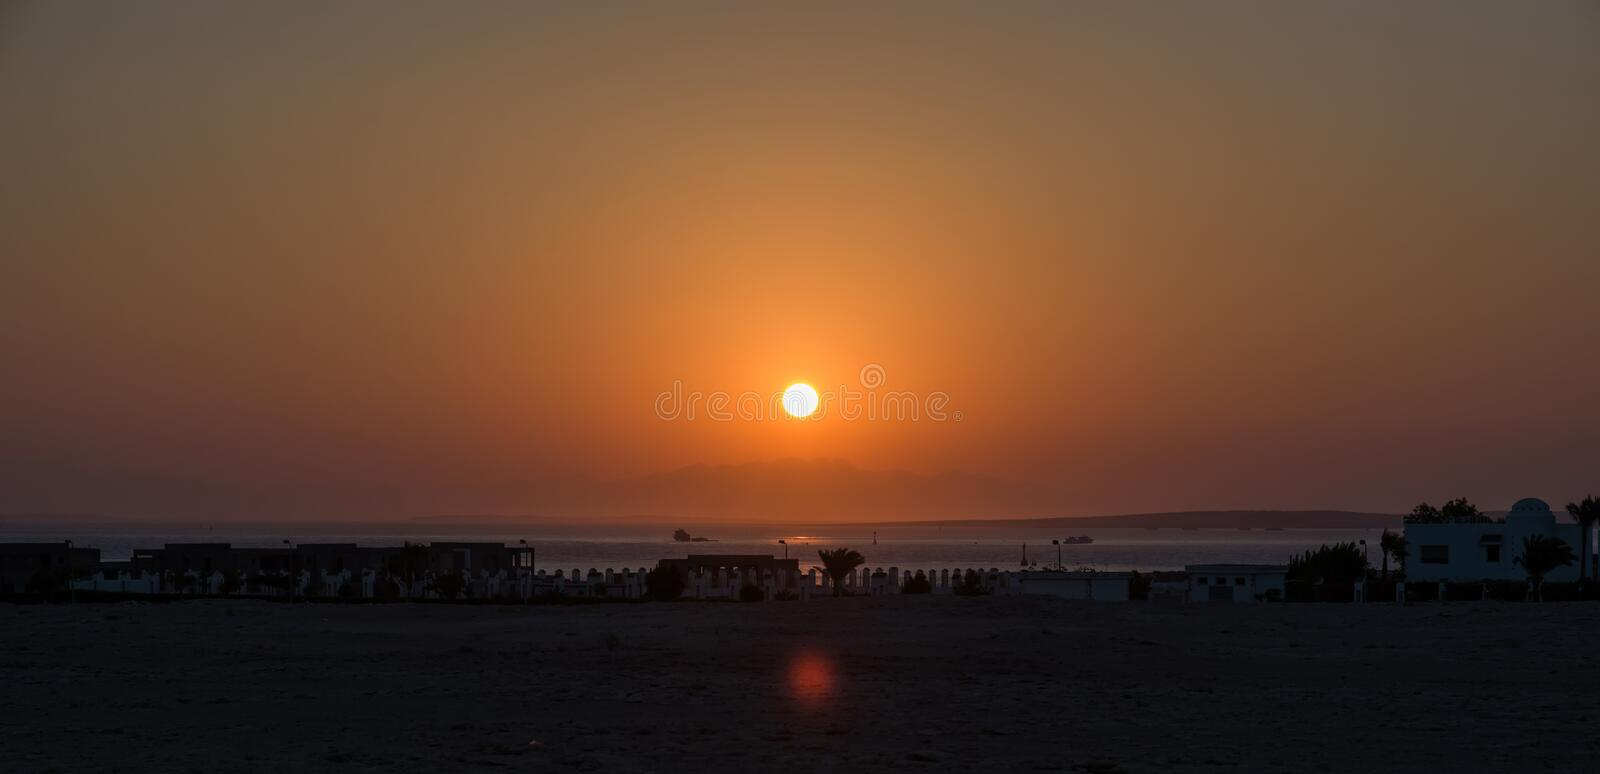 Sunset in Africa. Egypt. Sharm el-sheikh stock photography